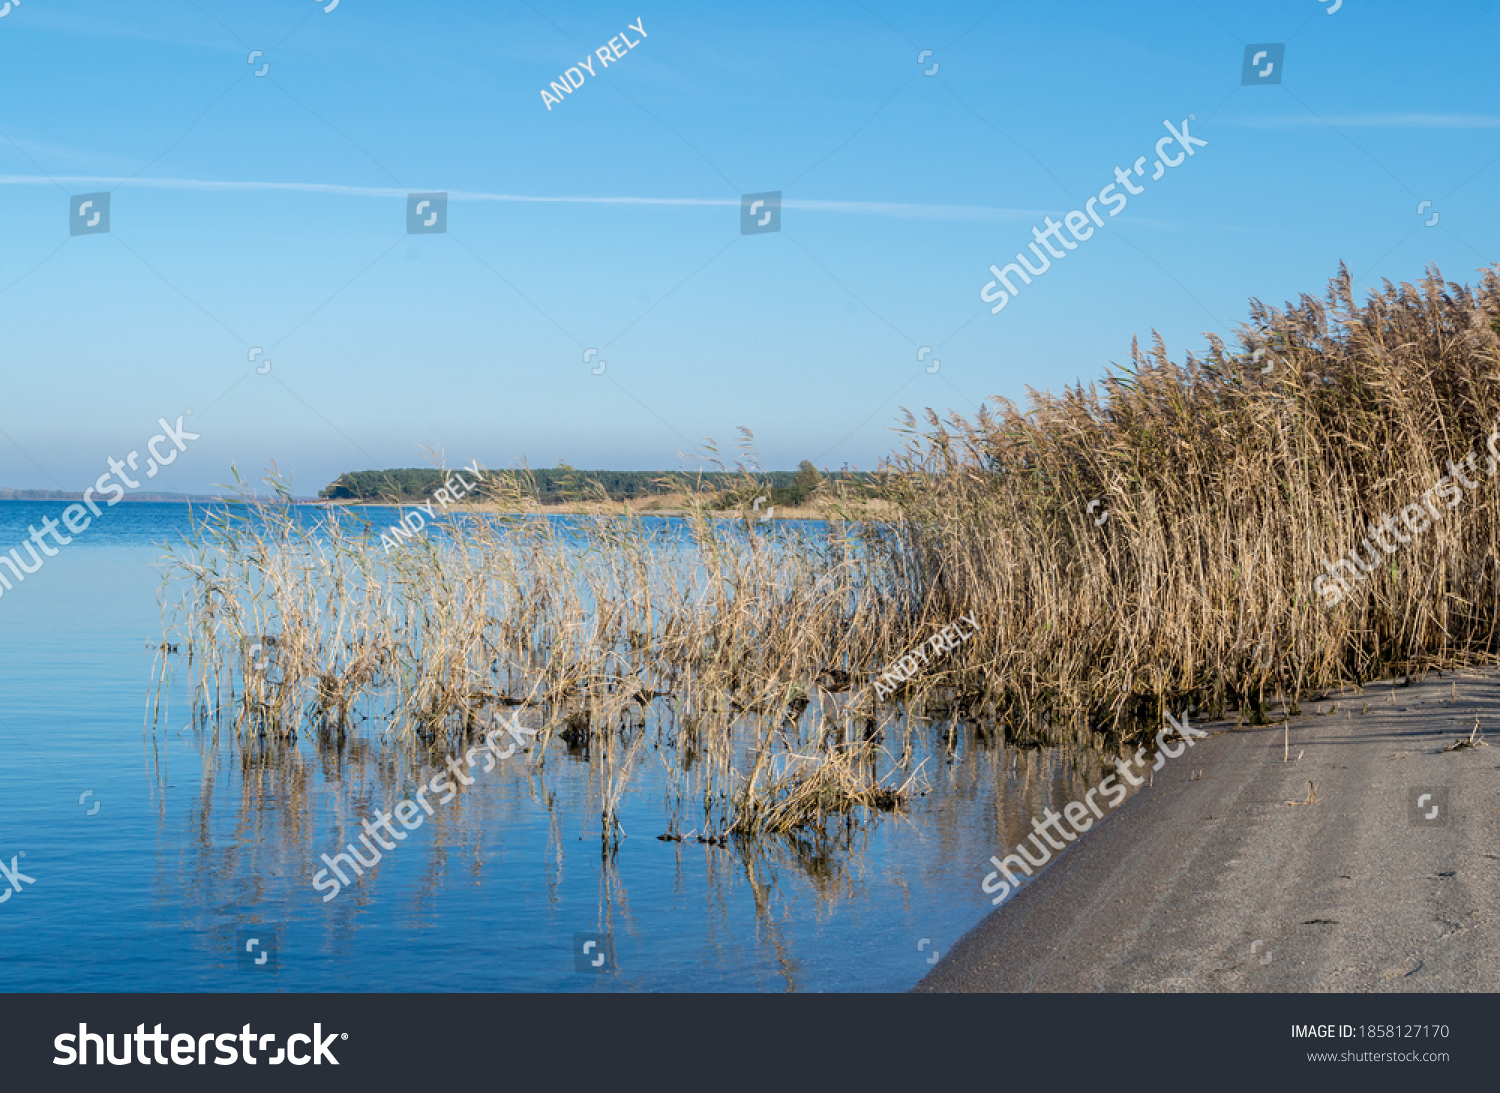 Landscape of sandy beach by calm water of blue lake, surrounded by autumn dry yellow reeds, reflected in water surface against sky with white plane track and  distant strip of green forest.